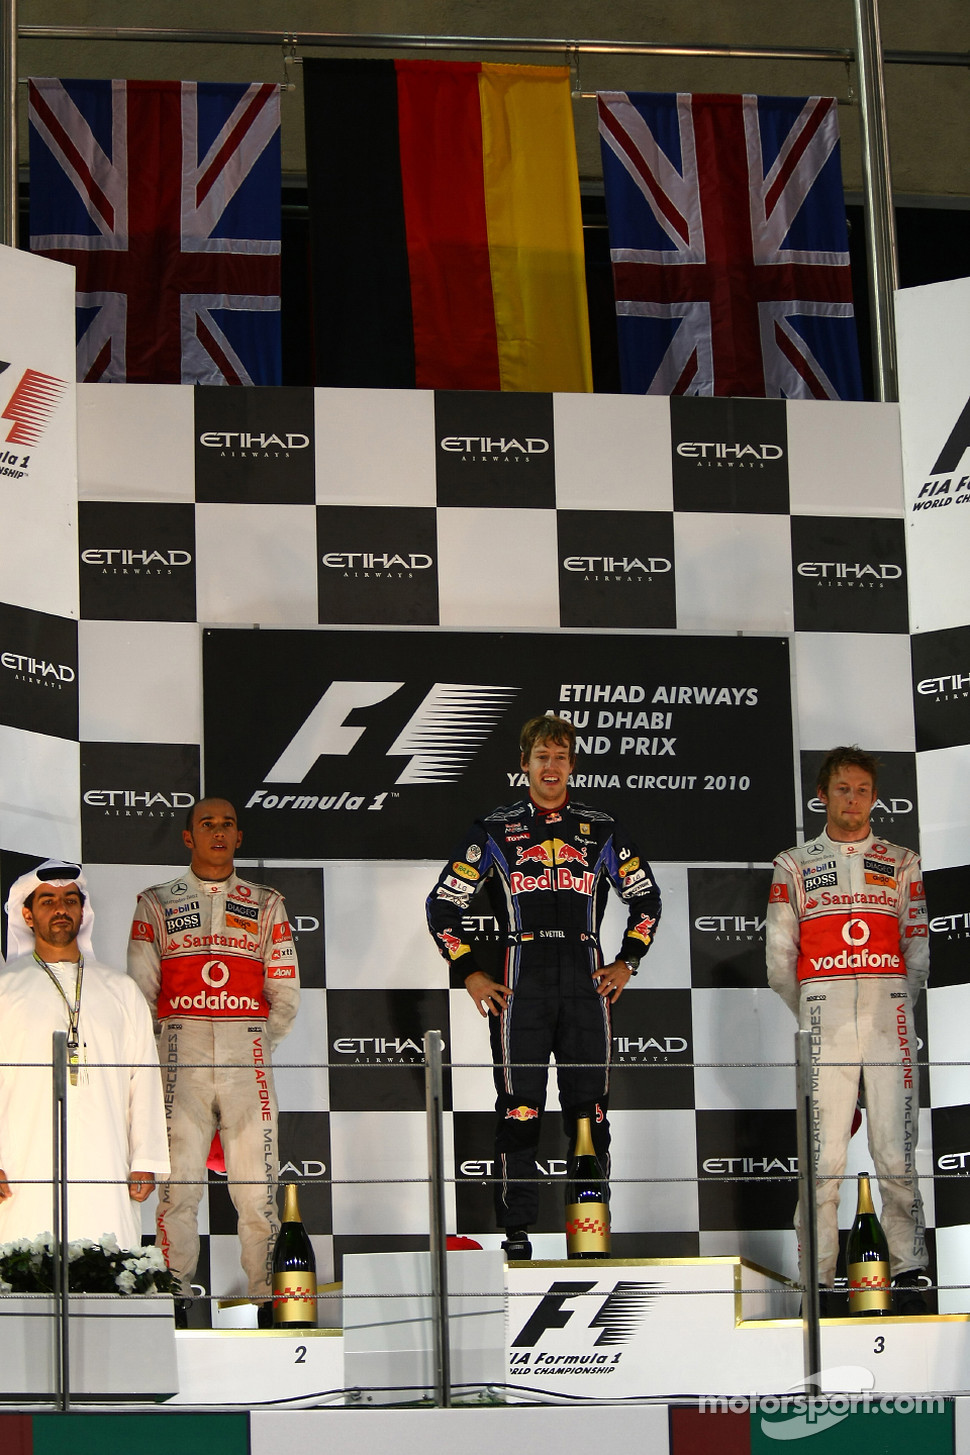 Podium: race winner and 2010 Formula One World Champion Sebastian Vettel, Red Bull Racing, second place Lewis Hamilton, McLaren Mercedes, third place Jenson Button, McLaren Mercedes